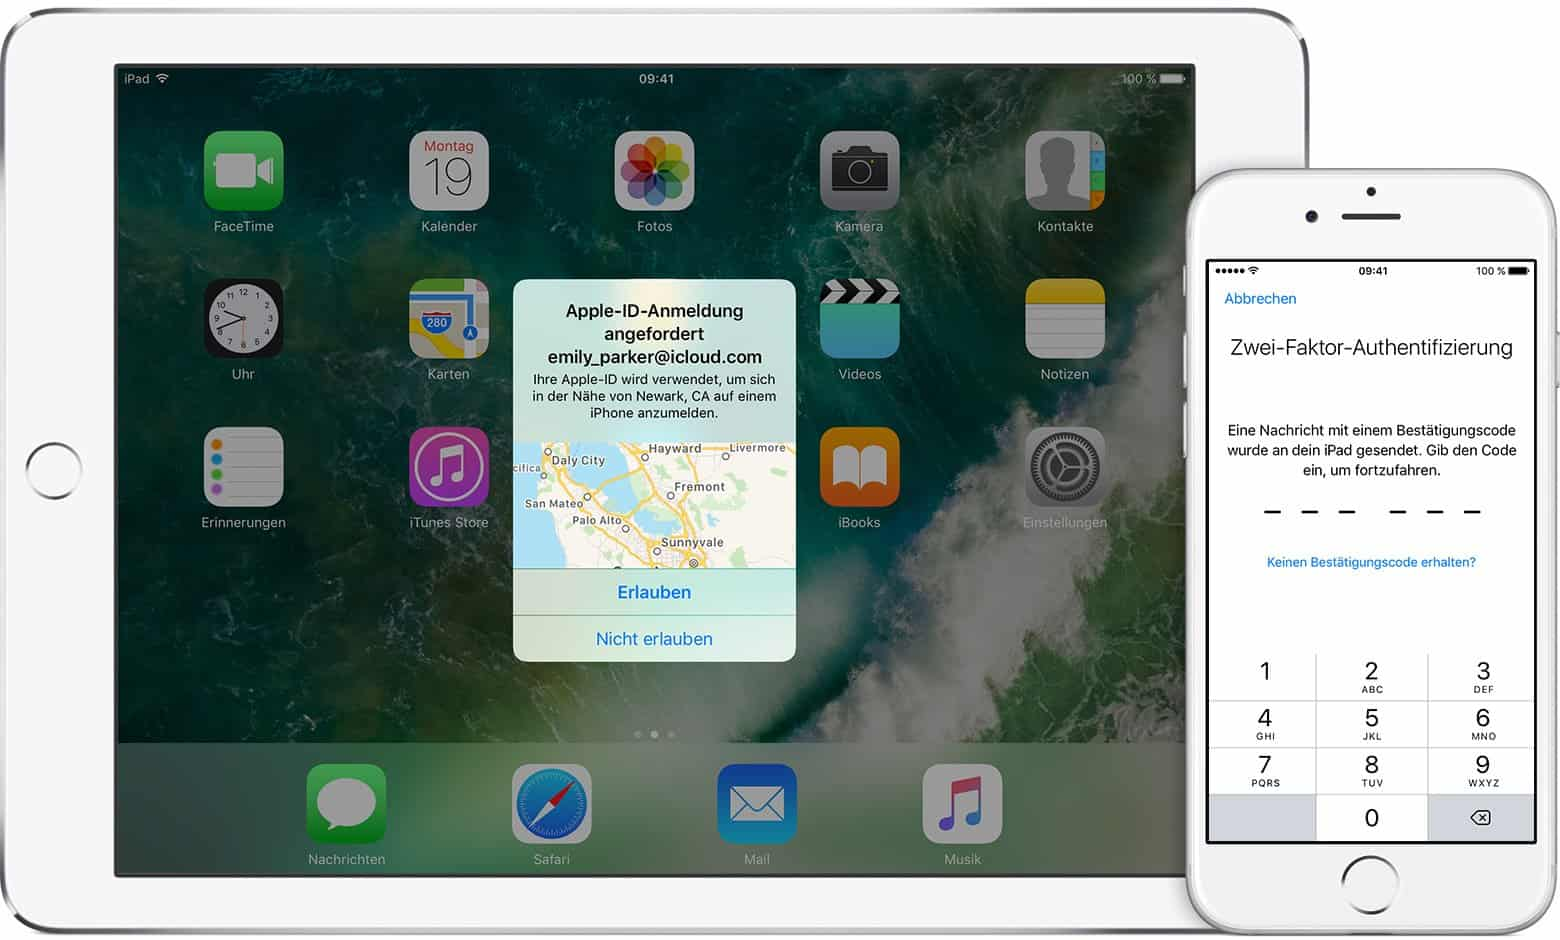 Apple - iPad, iPhone - Verifikation - Login